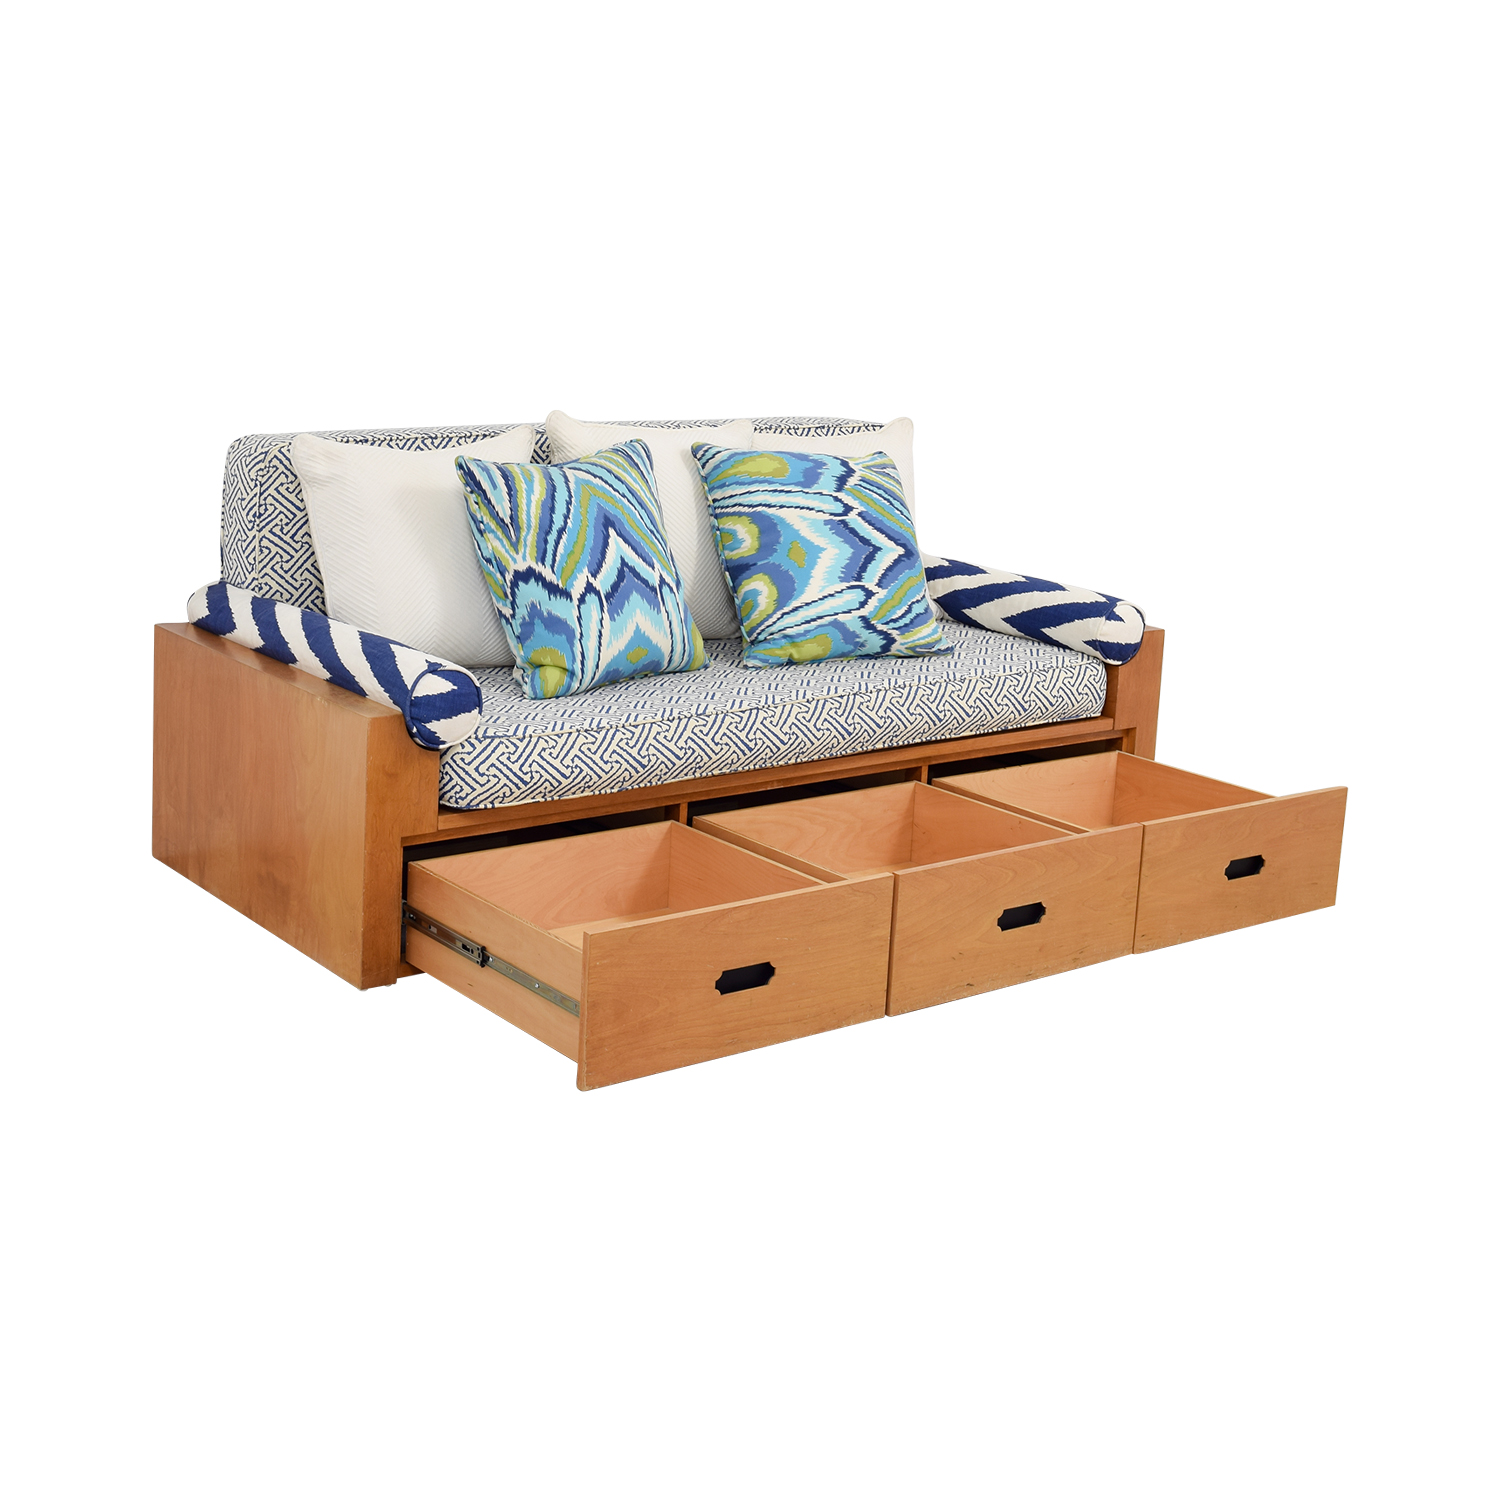 Custom Wood Daybed with Storage price